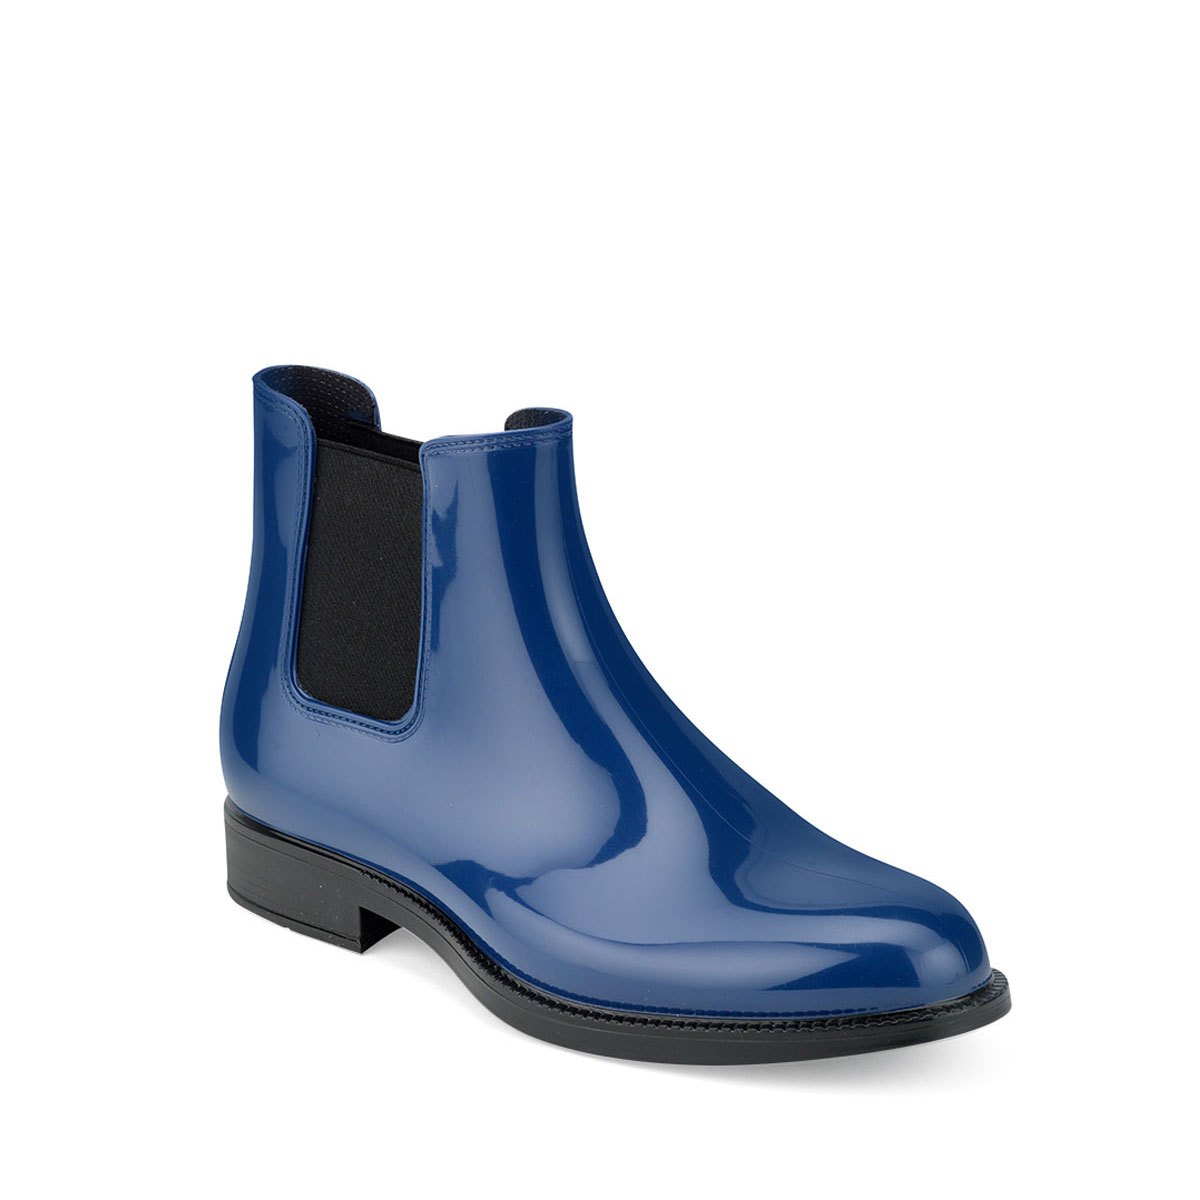 Chelsea boot in bright pvc with elastic band on ankle sides and insole - dark royal colour